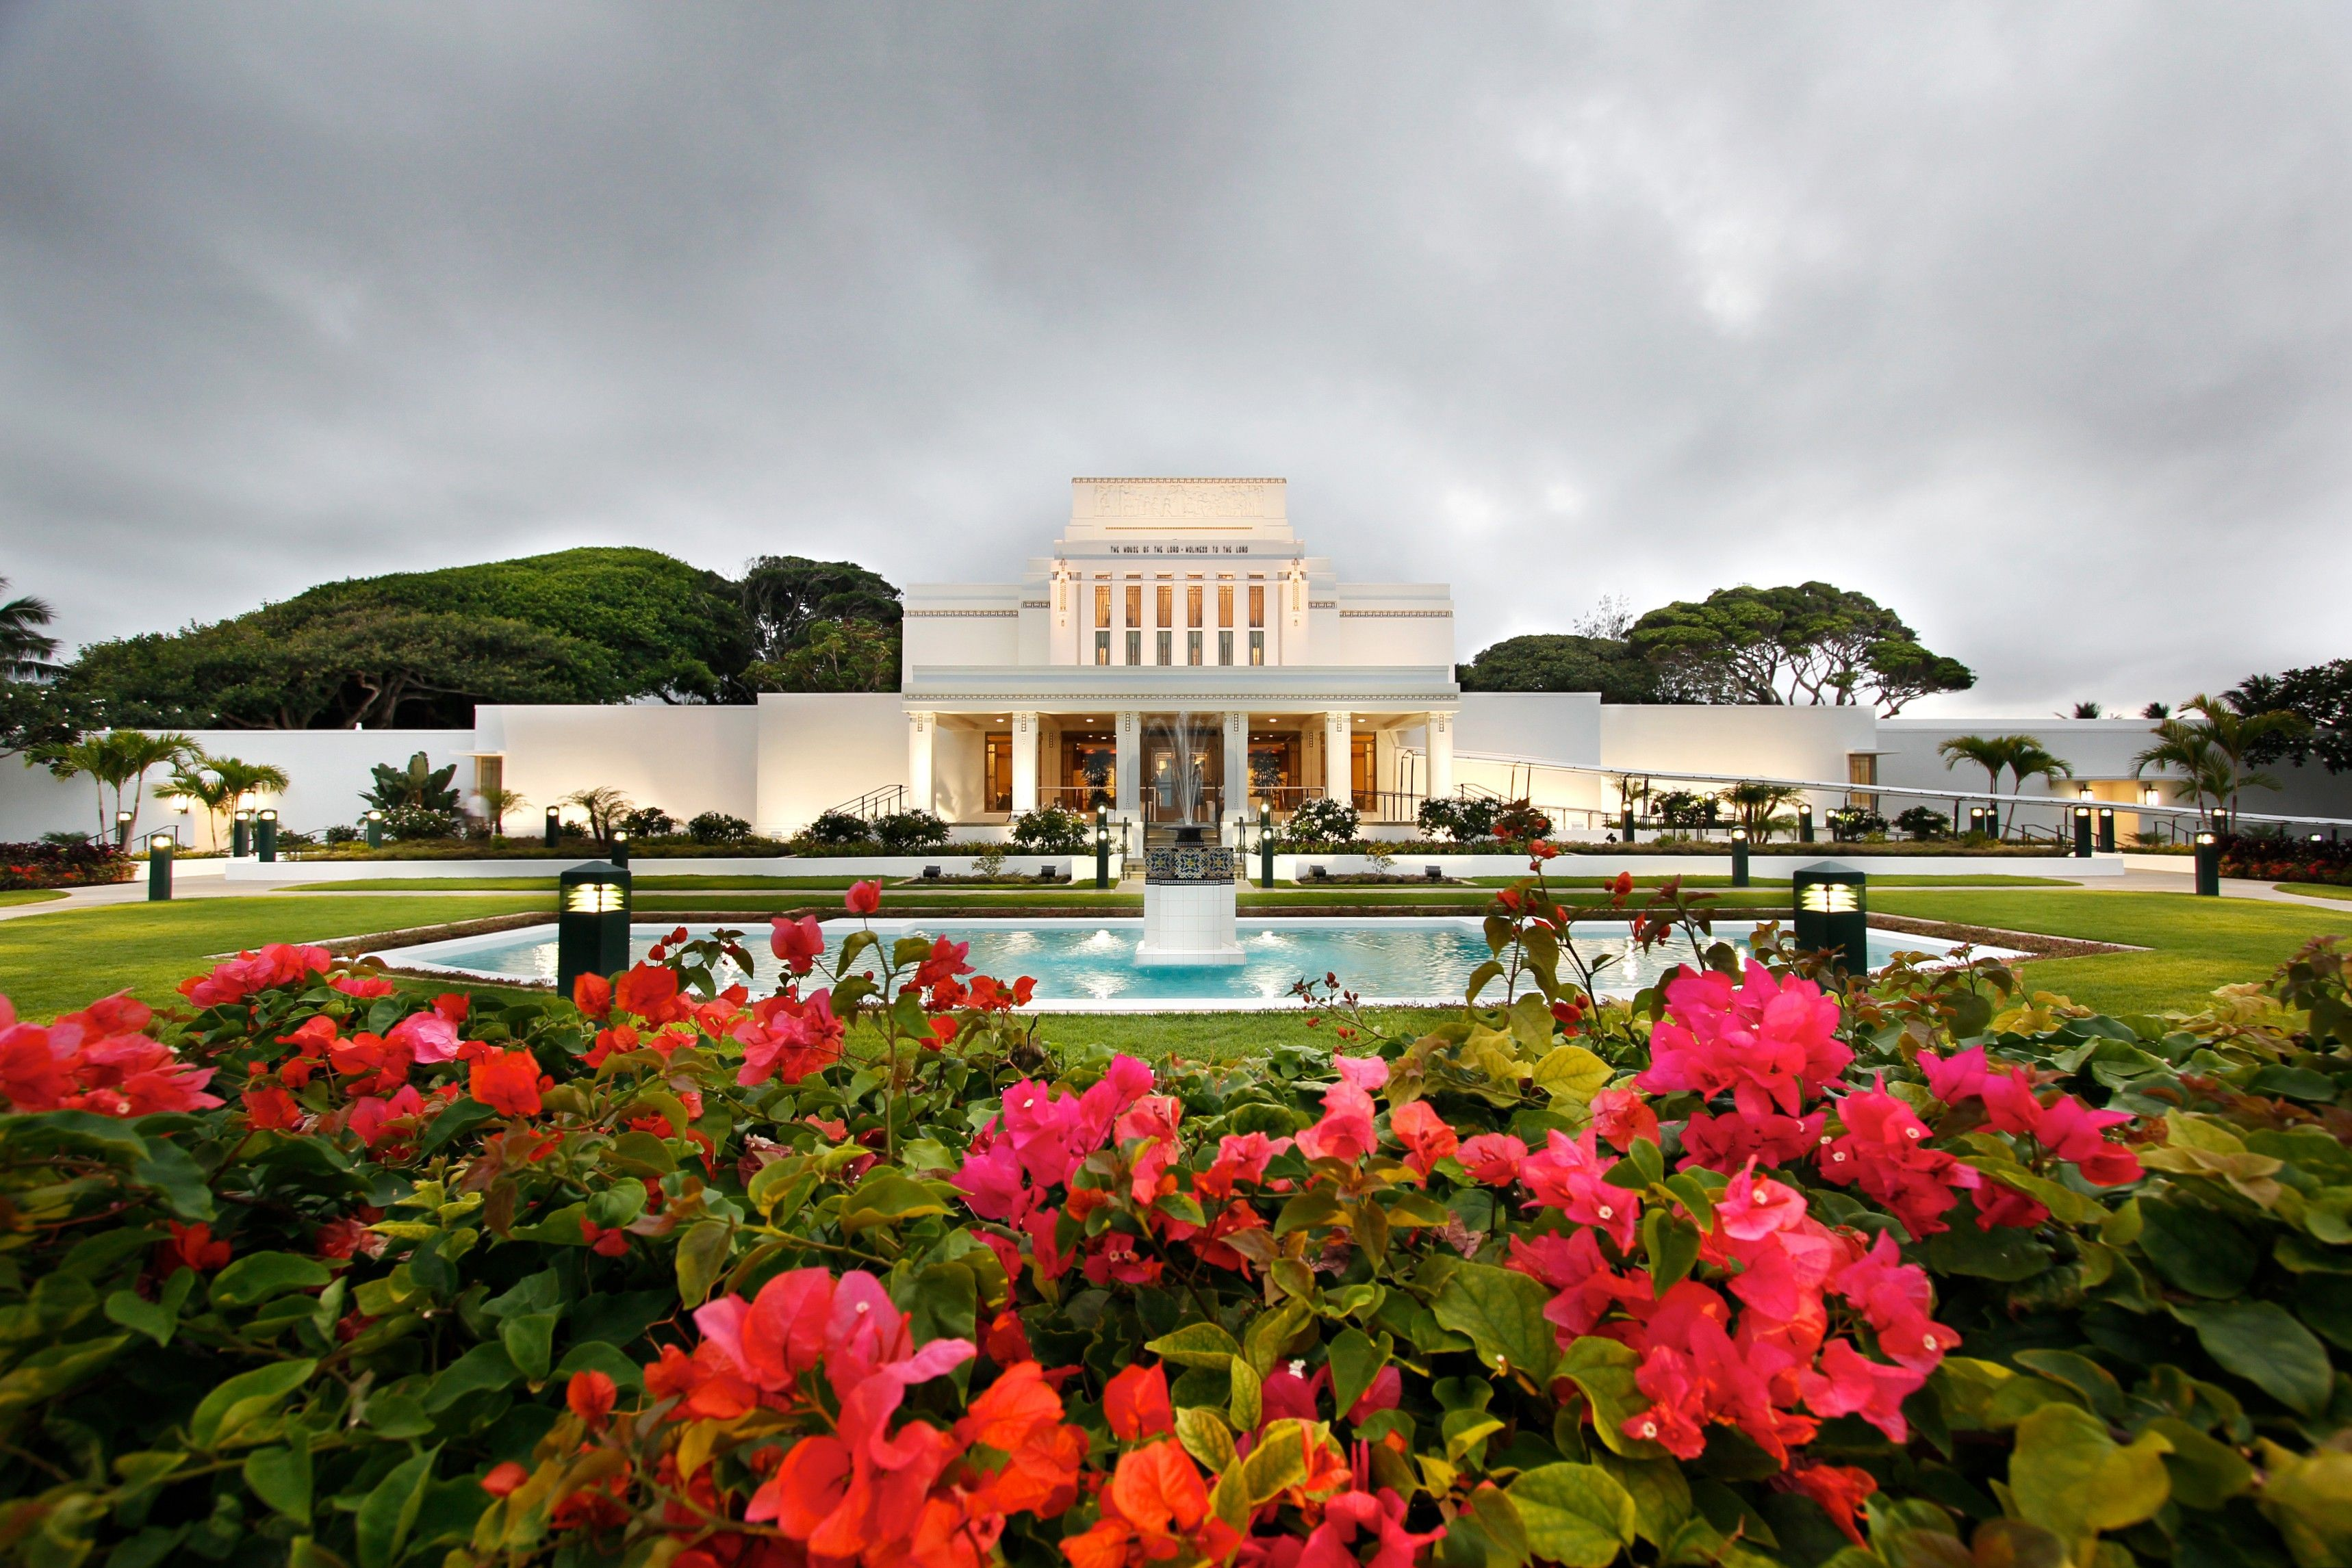 The Laie Hawaii Temple entrance, including a pond and scenery.